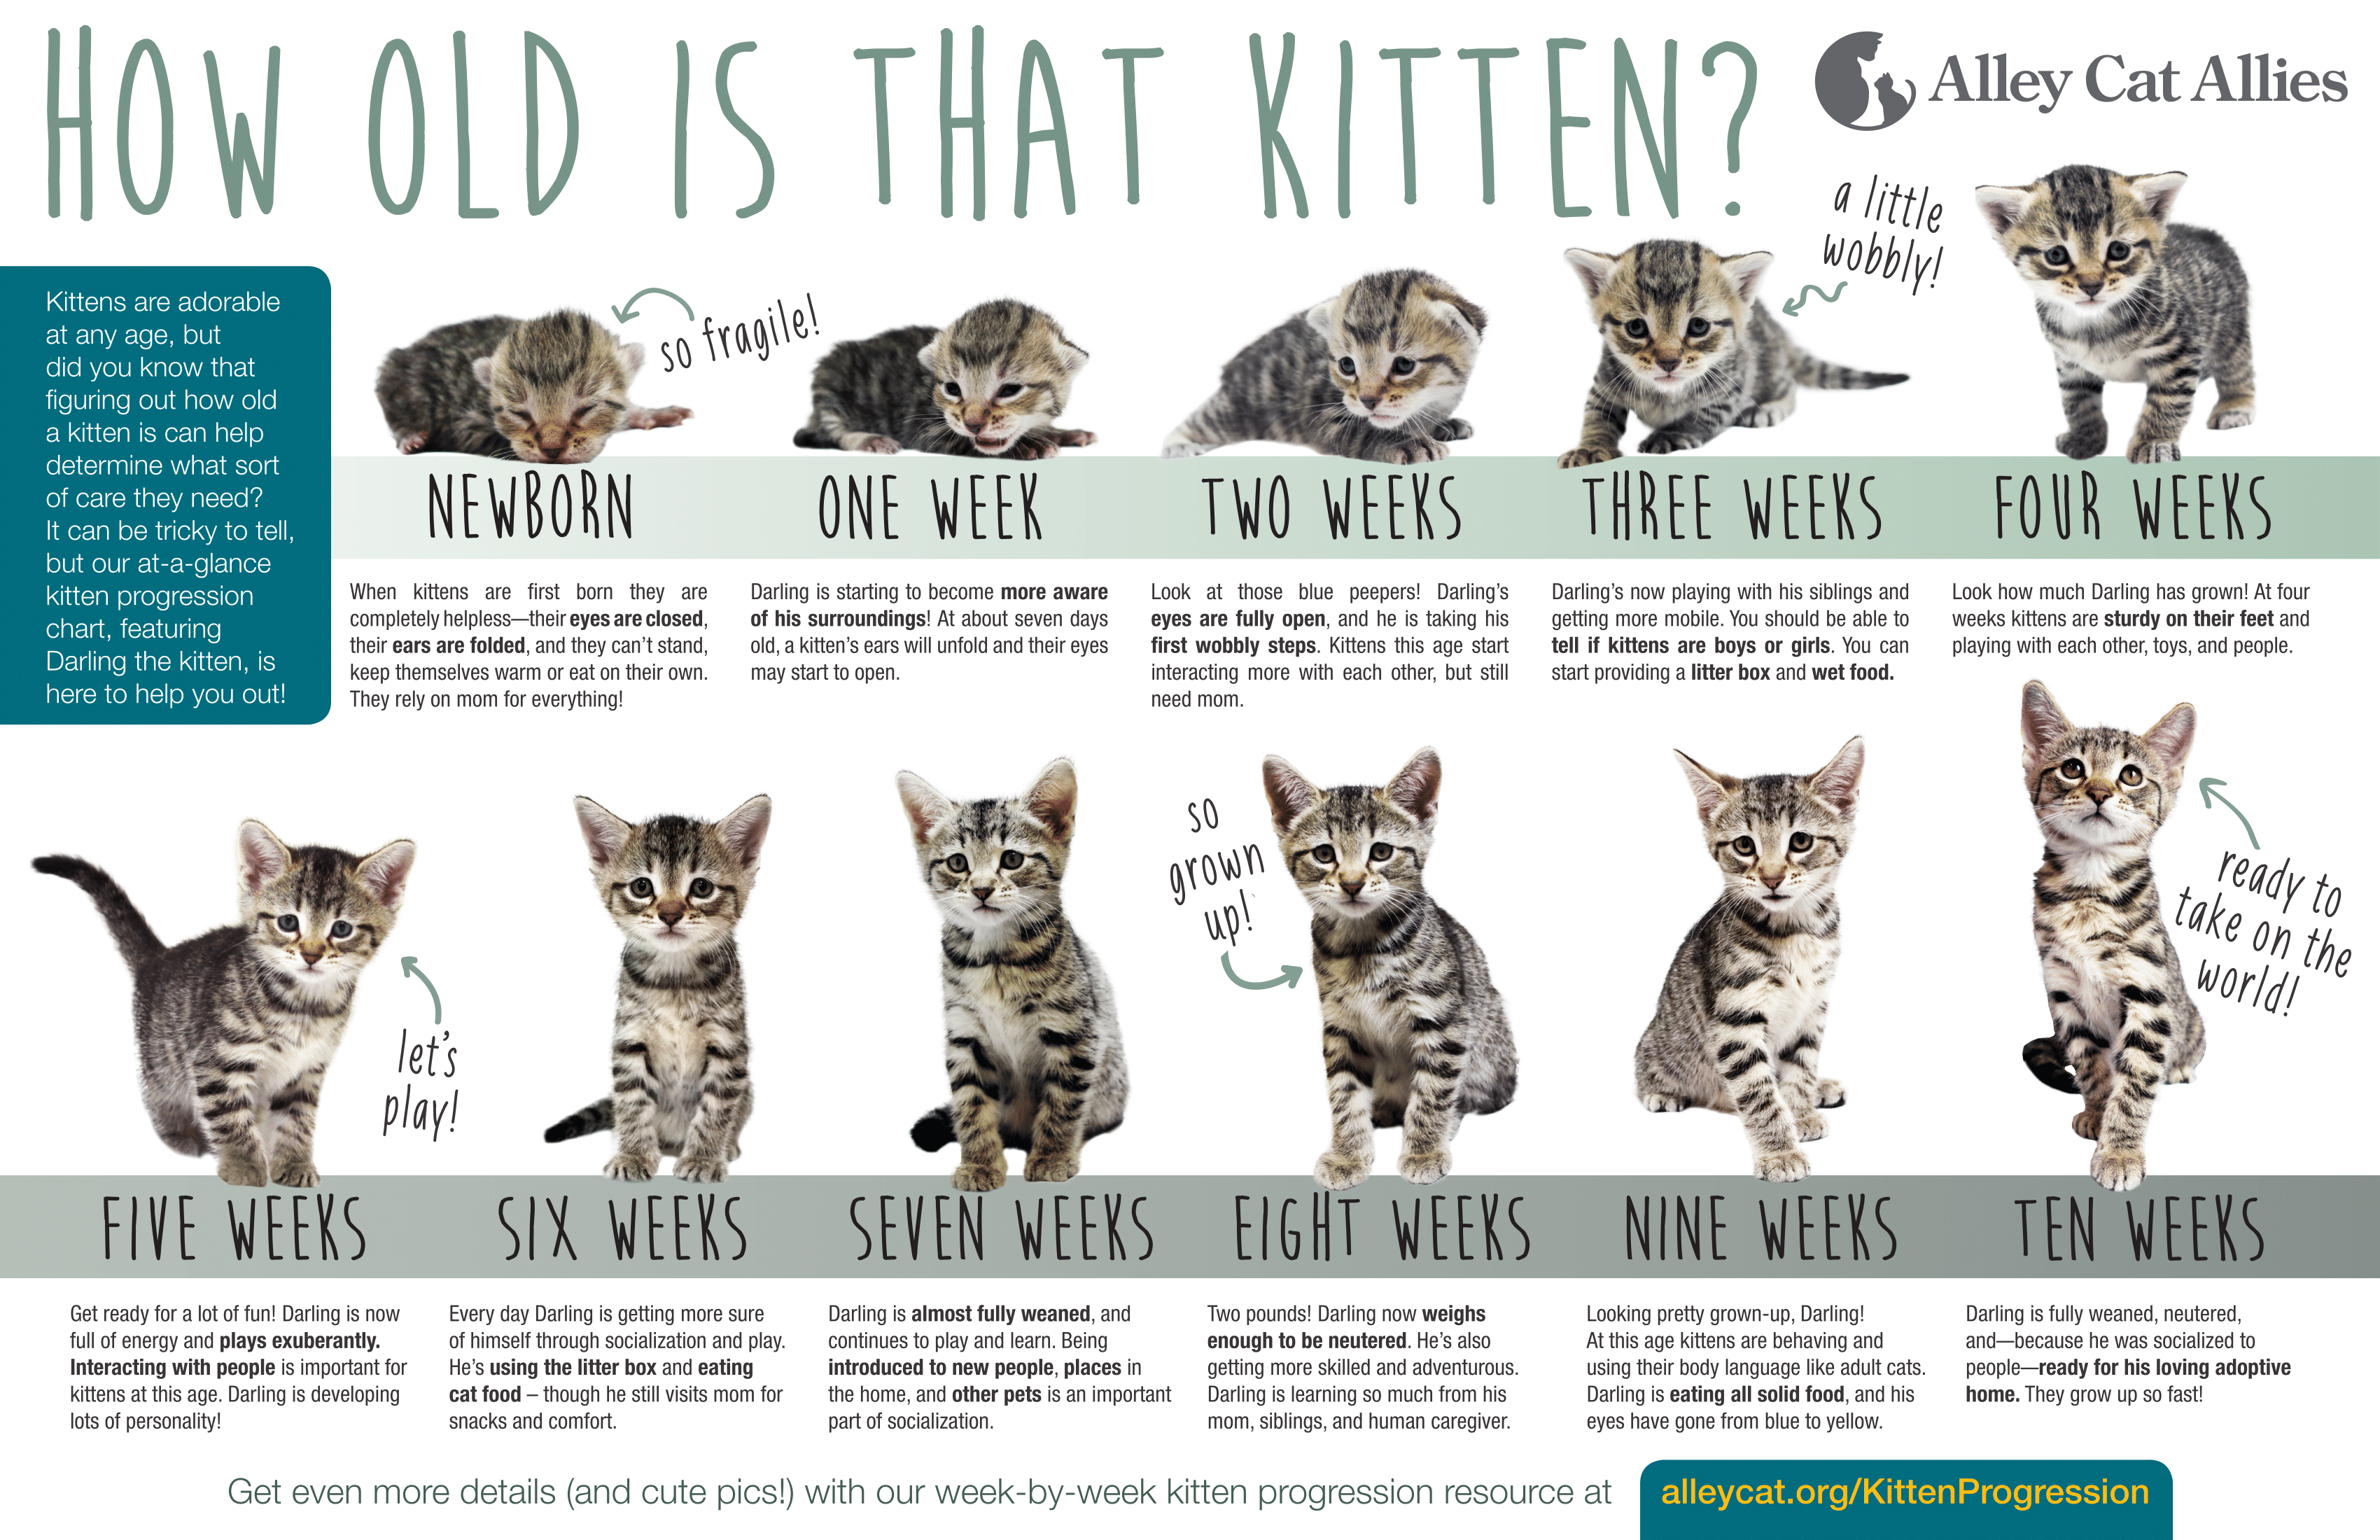 Kitten Growth Timeline Check More At Http Best Wow Guide Info Kitten Growth Timeline Html Kitten Season Alley Cat Allies Kittens